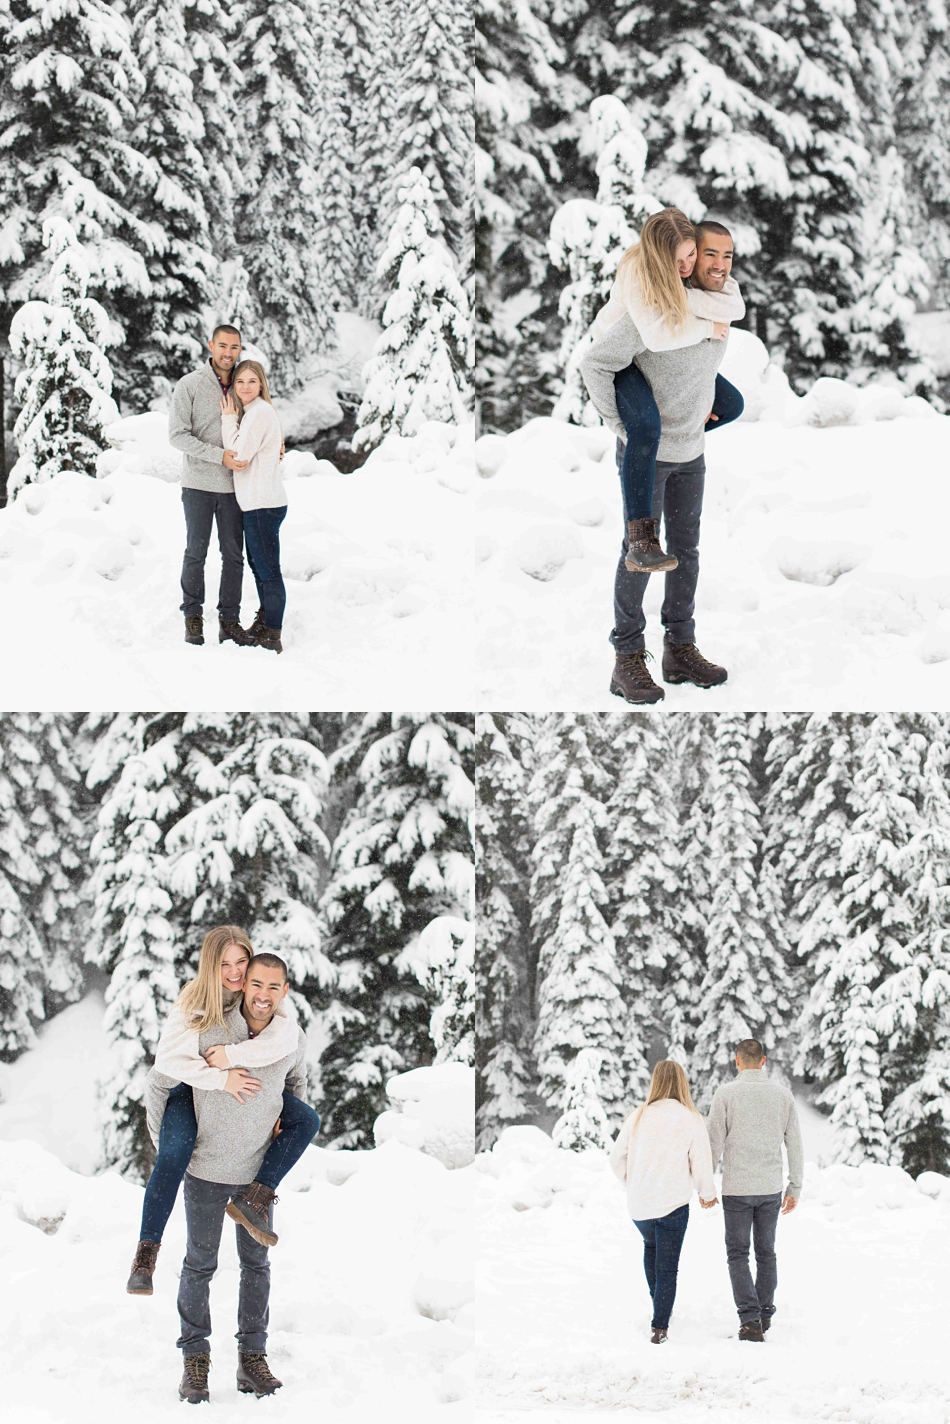 Pictures from an outdoor winter snow engagement shoot at Snoqualmie Pass near Seattle, WA. | Joanna Monger Photography | Snohomish Wedding Photographer